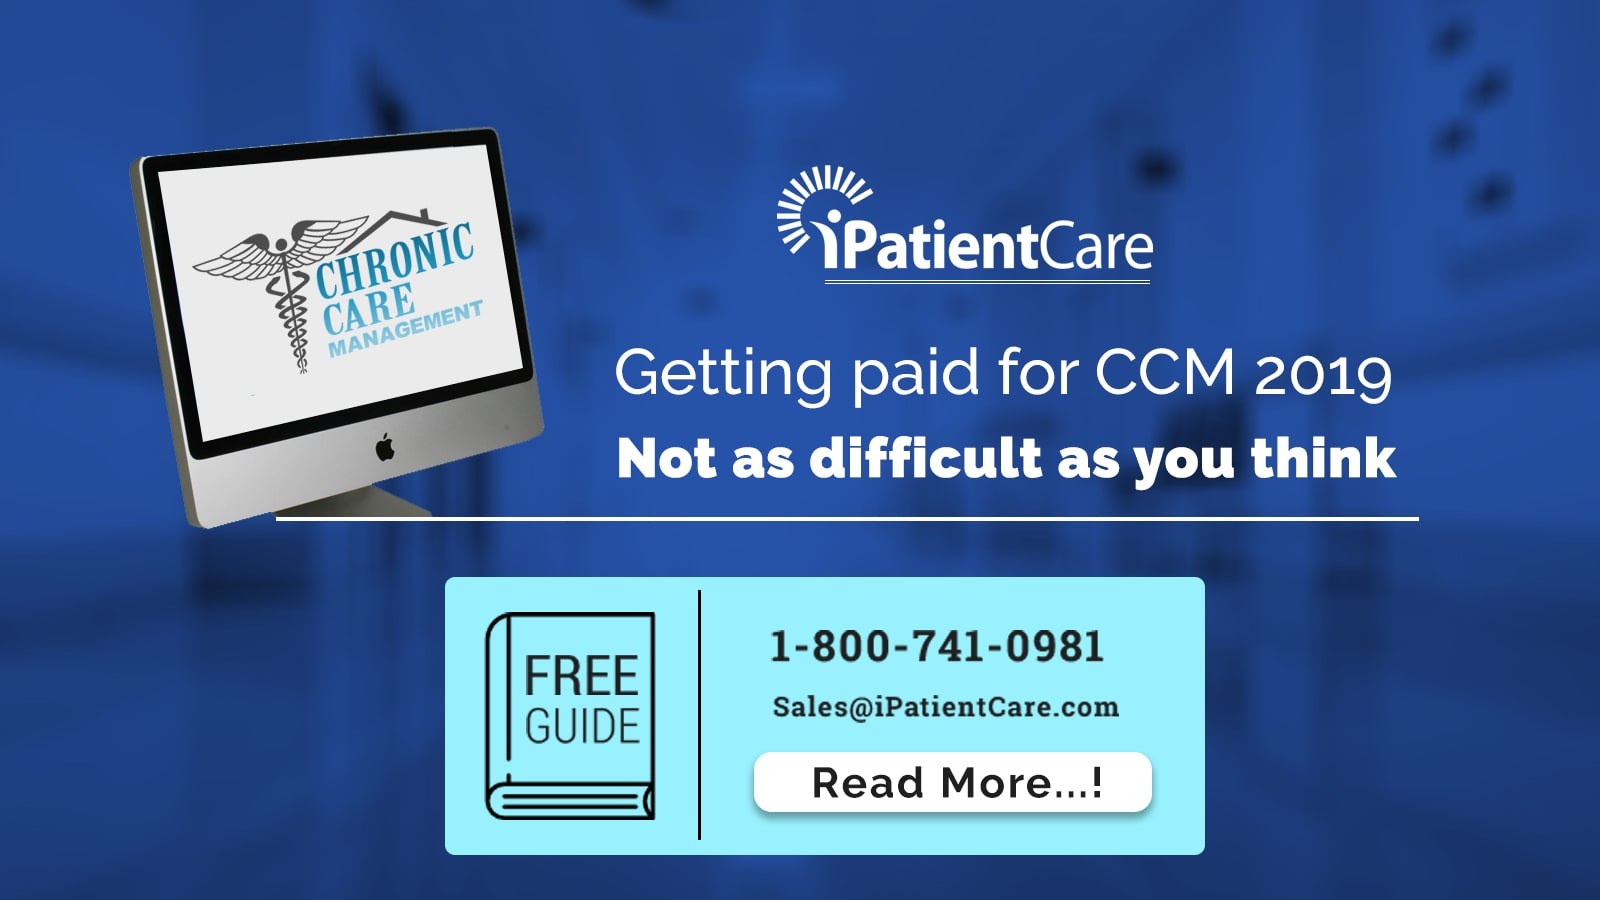 iPatientCare Blog - Getting paid for CCM 2019